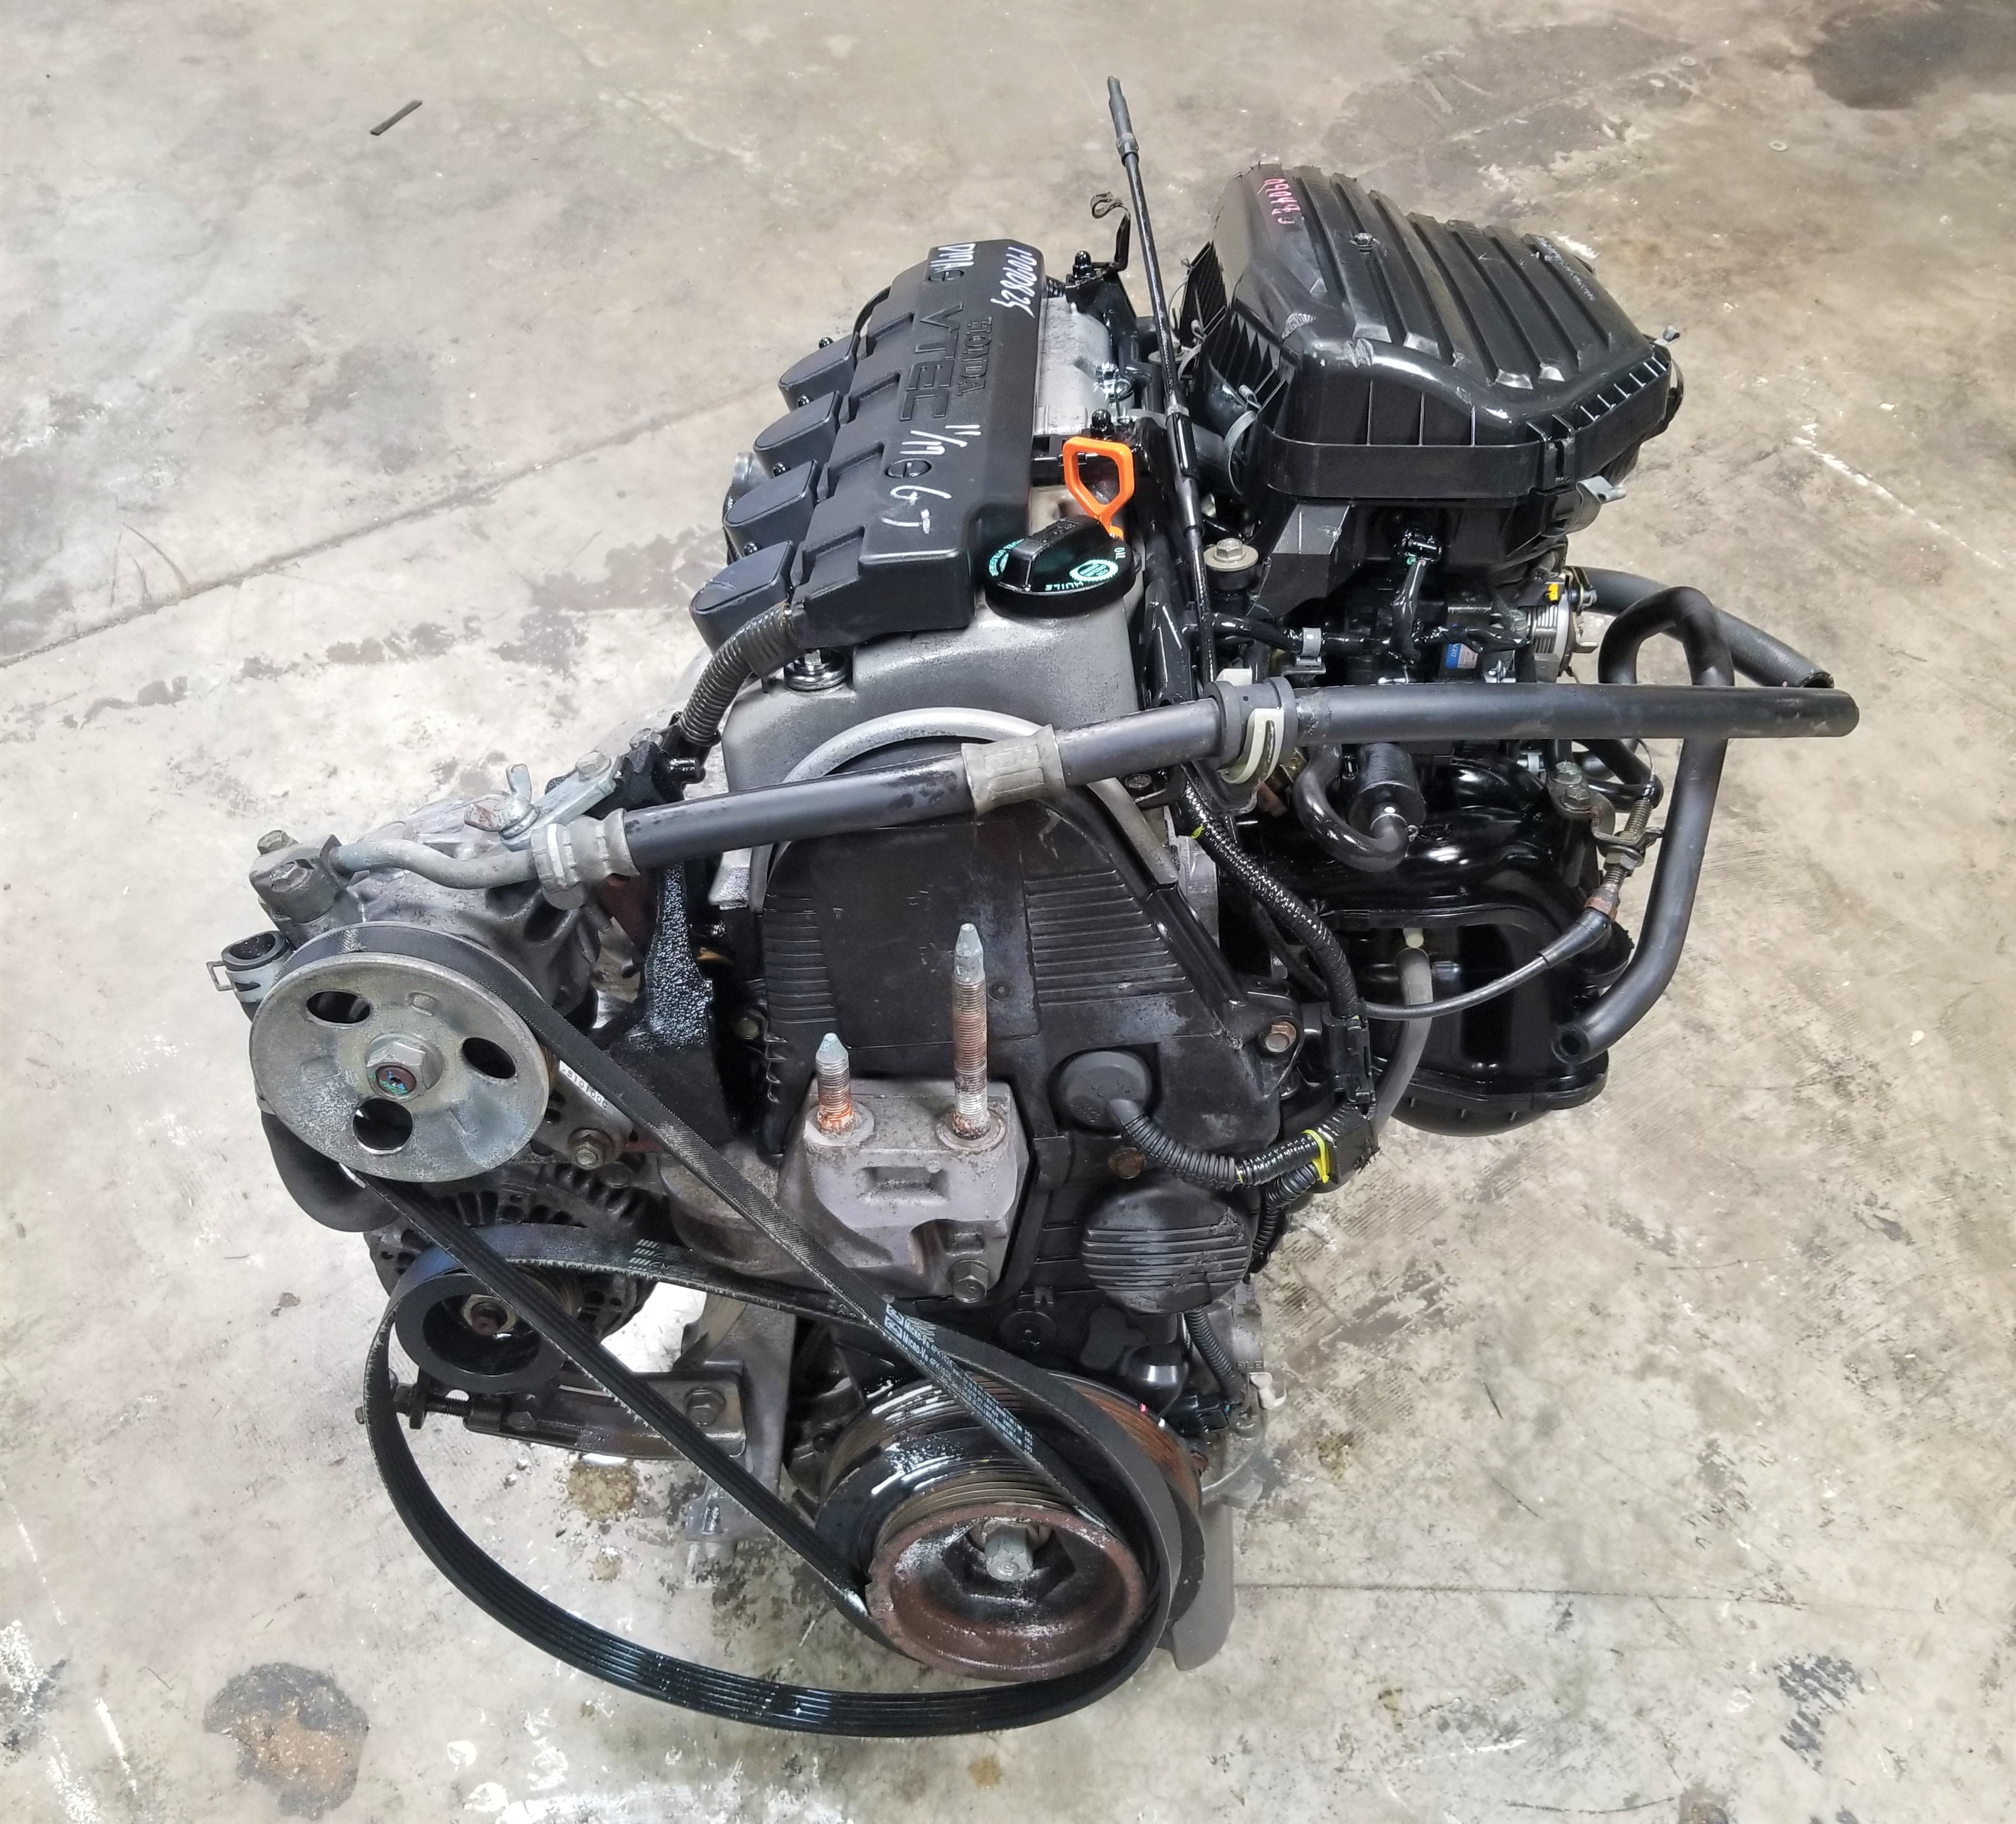 D17 2001-2005 HONDA CIVIC 1.7 Engine JDM D17A VTEC 1.7L